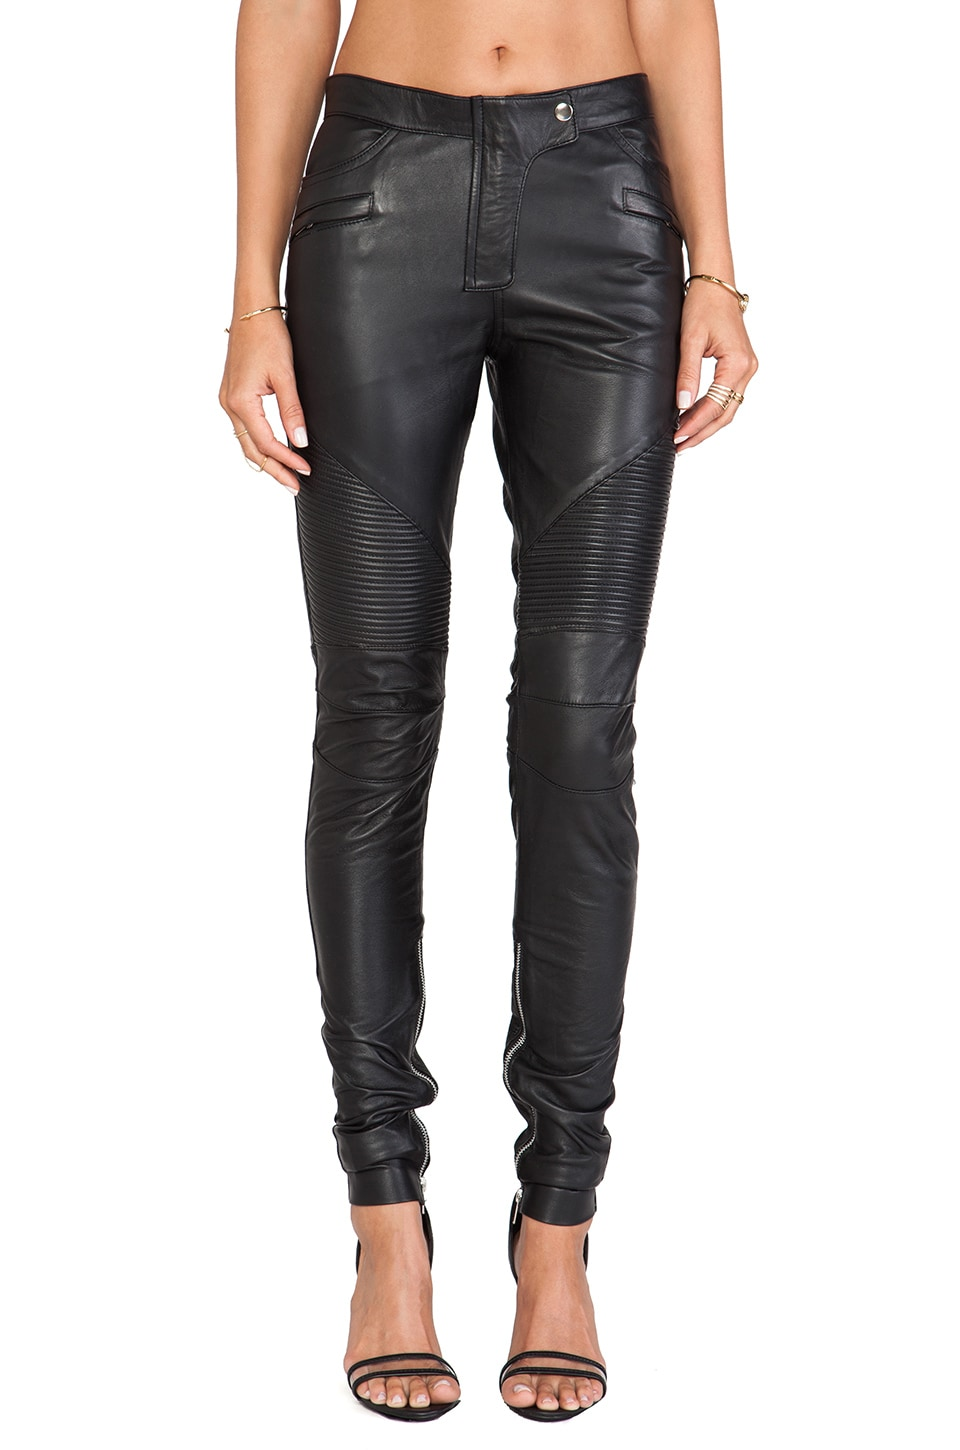 WINSTON WOLFE Biker Pants in Black